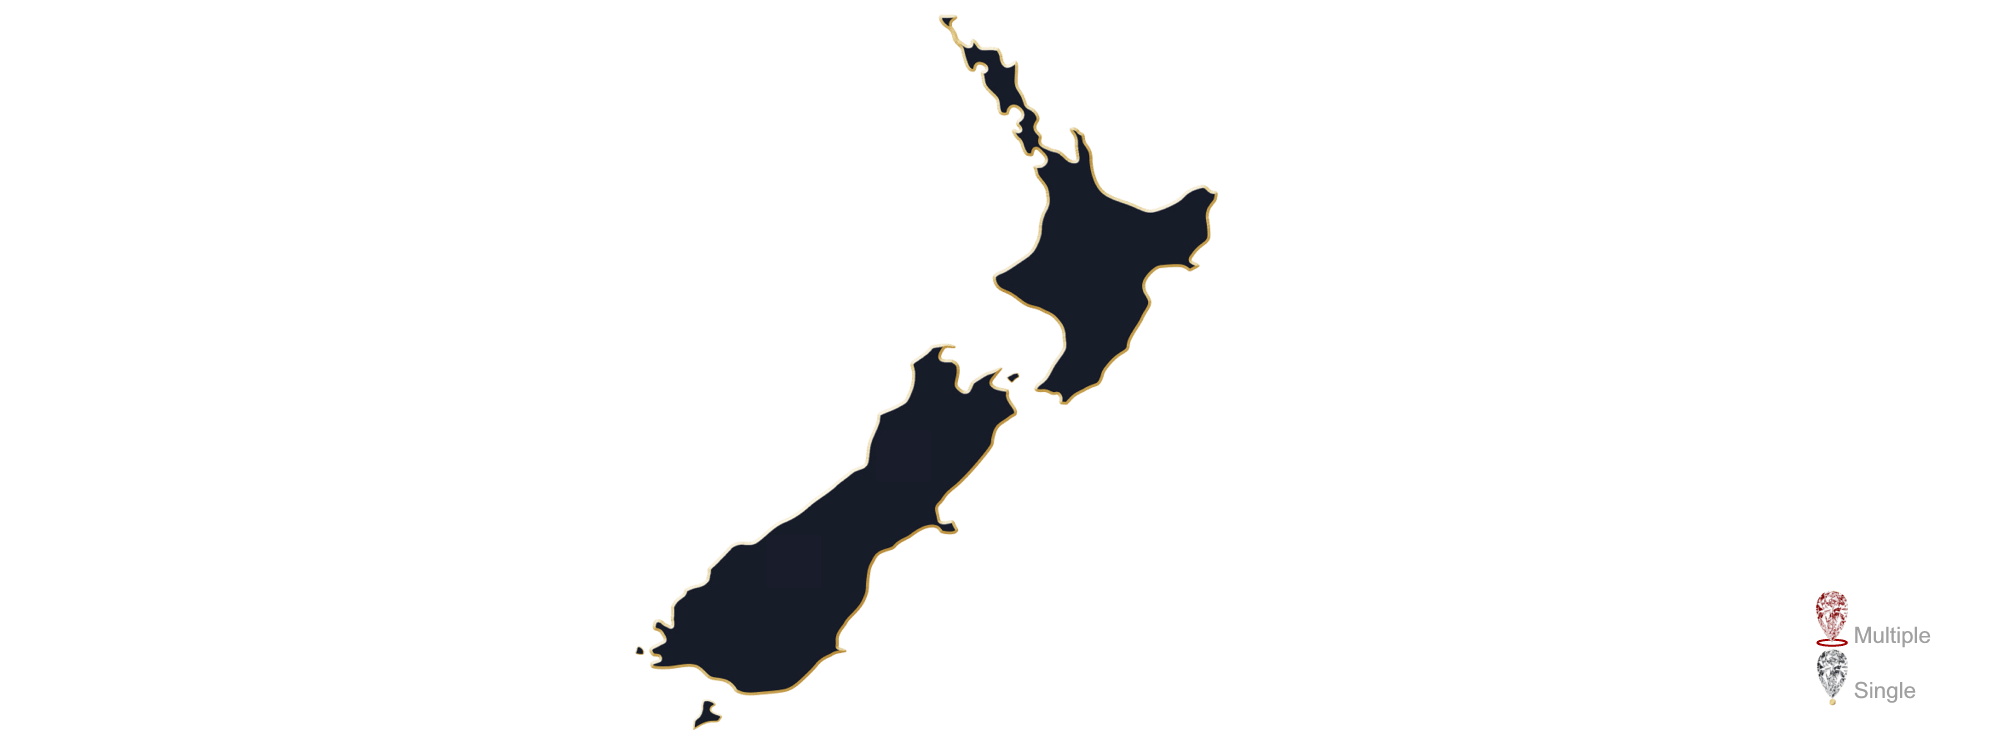 Map showing the location of Jewellery Valuers in NZ